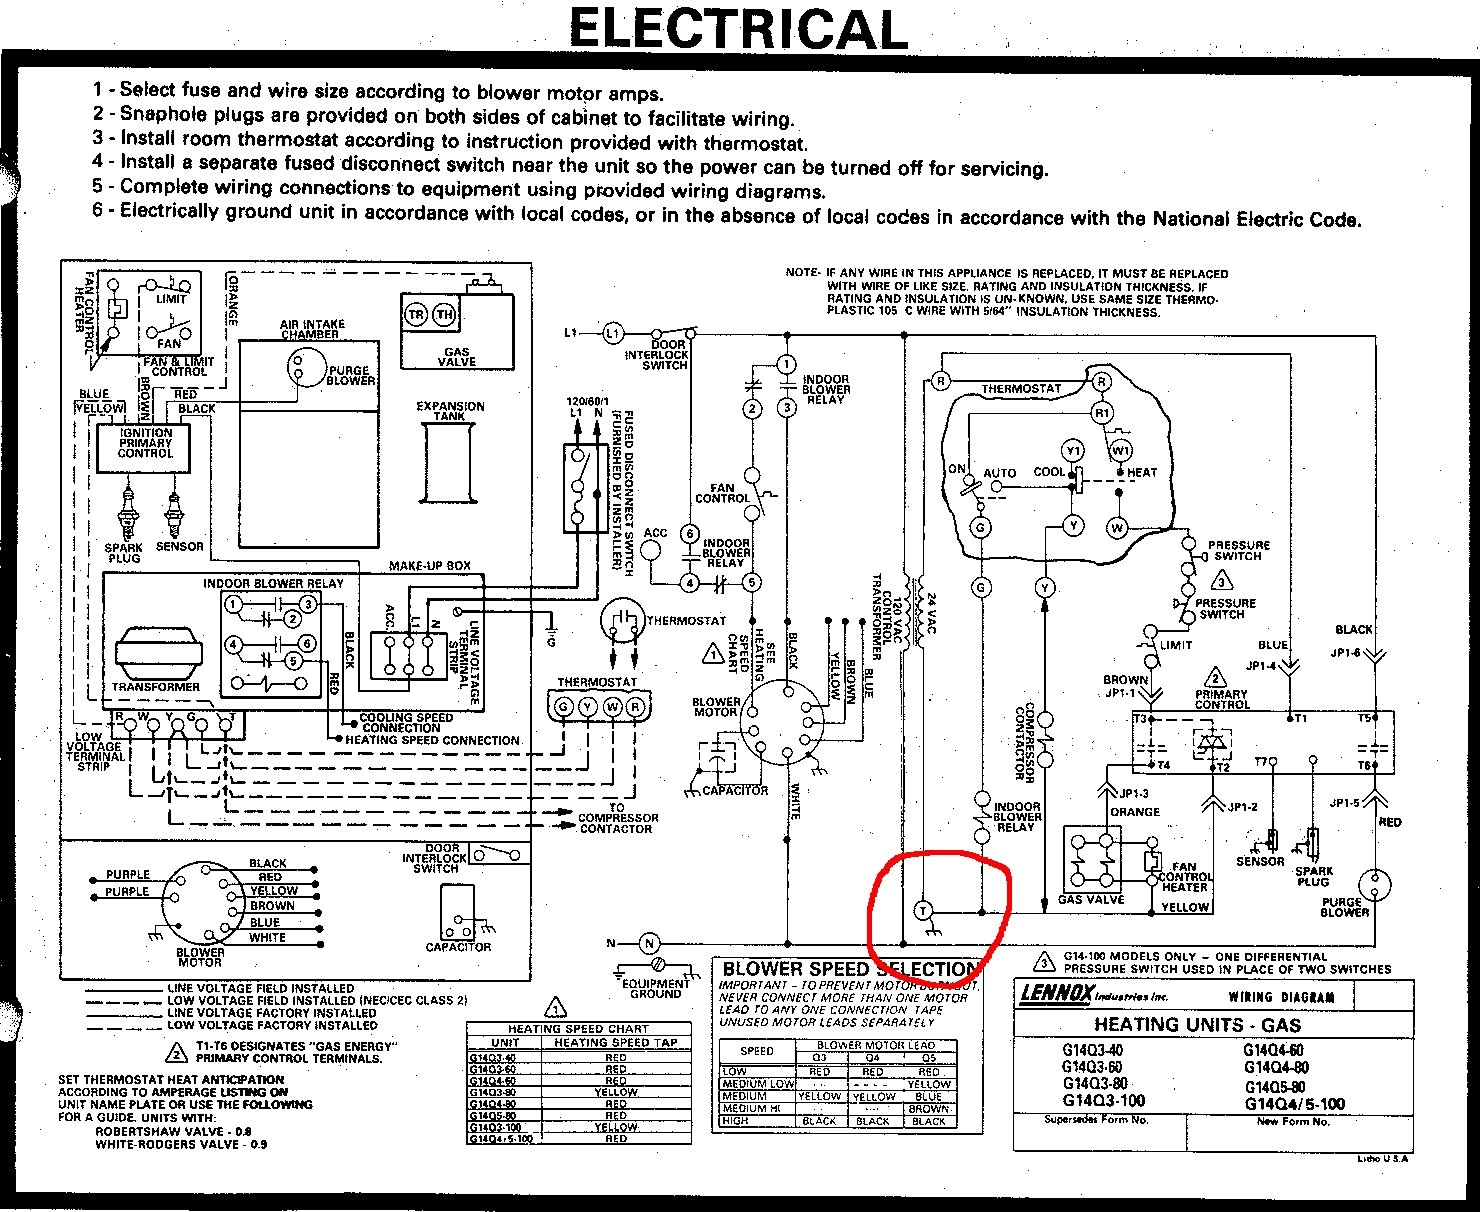 Lennox Air Conditioner Wiring Diagram Free Download Guide And Home Compesser Library Rh 71 Budoshop4you De Package Unit Diagrams Split